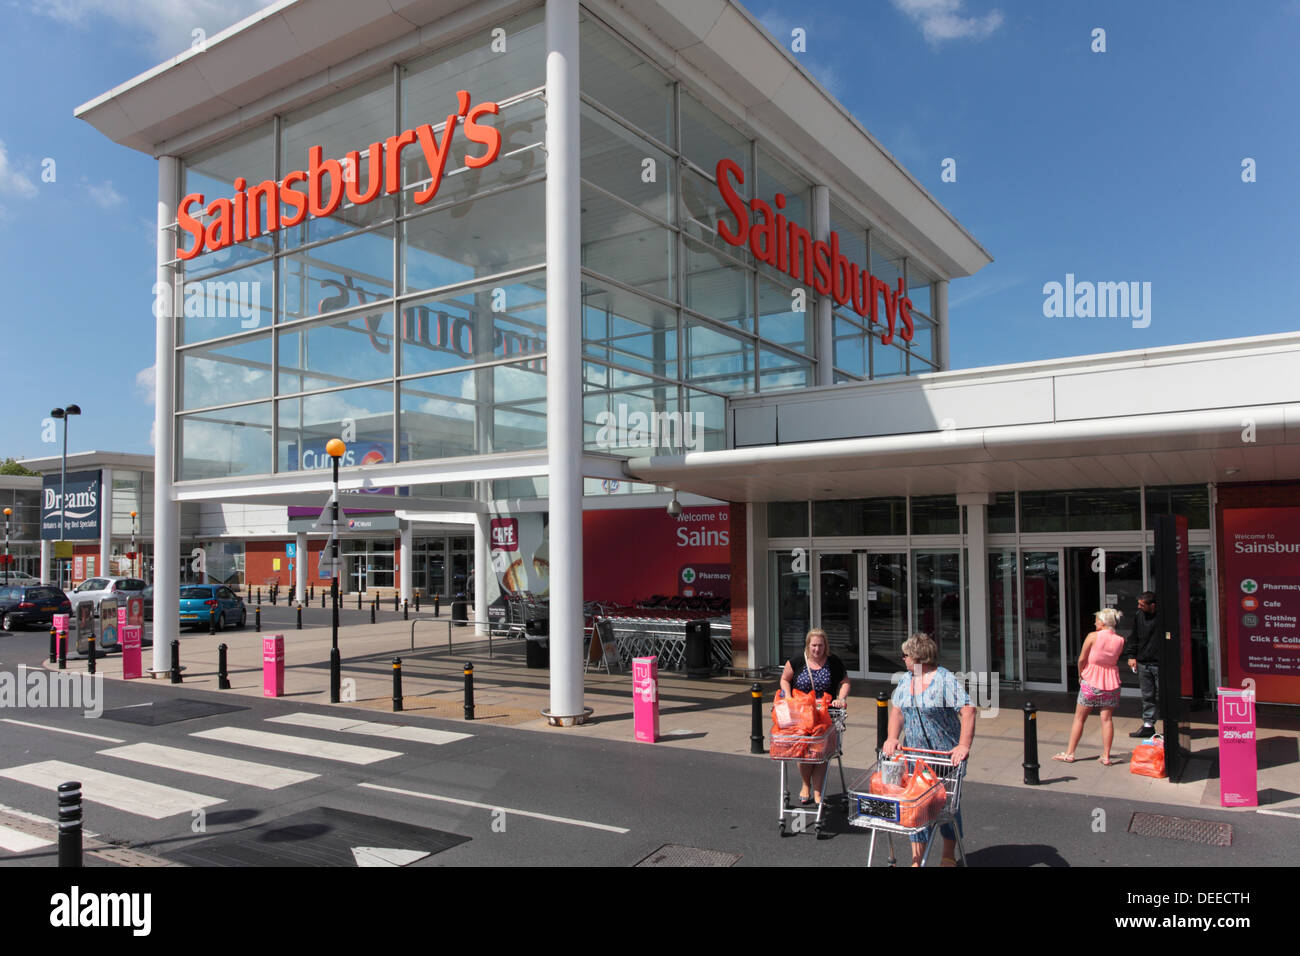 shoppers at sainsbury 39 s store in burnley stock photo royalty free image 60553713 alamy. Black Bedroom Furniture Sets. Home Design Ideas